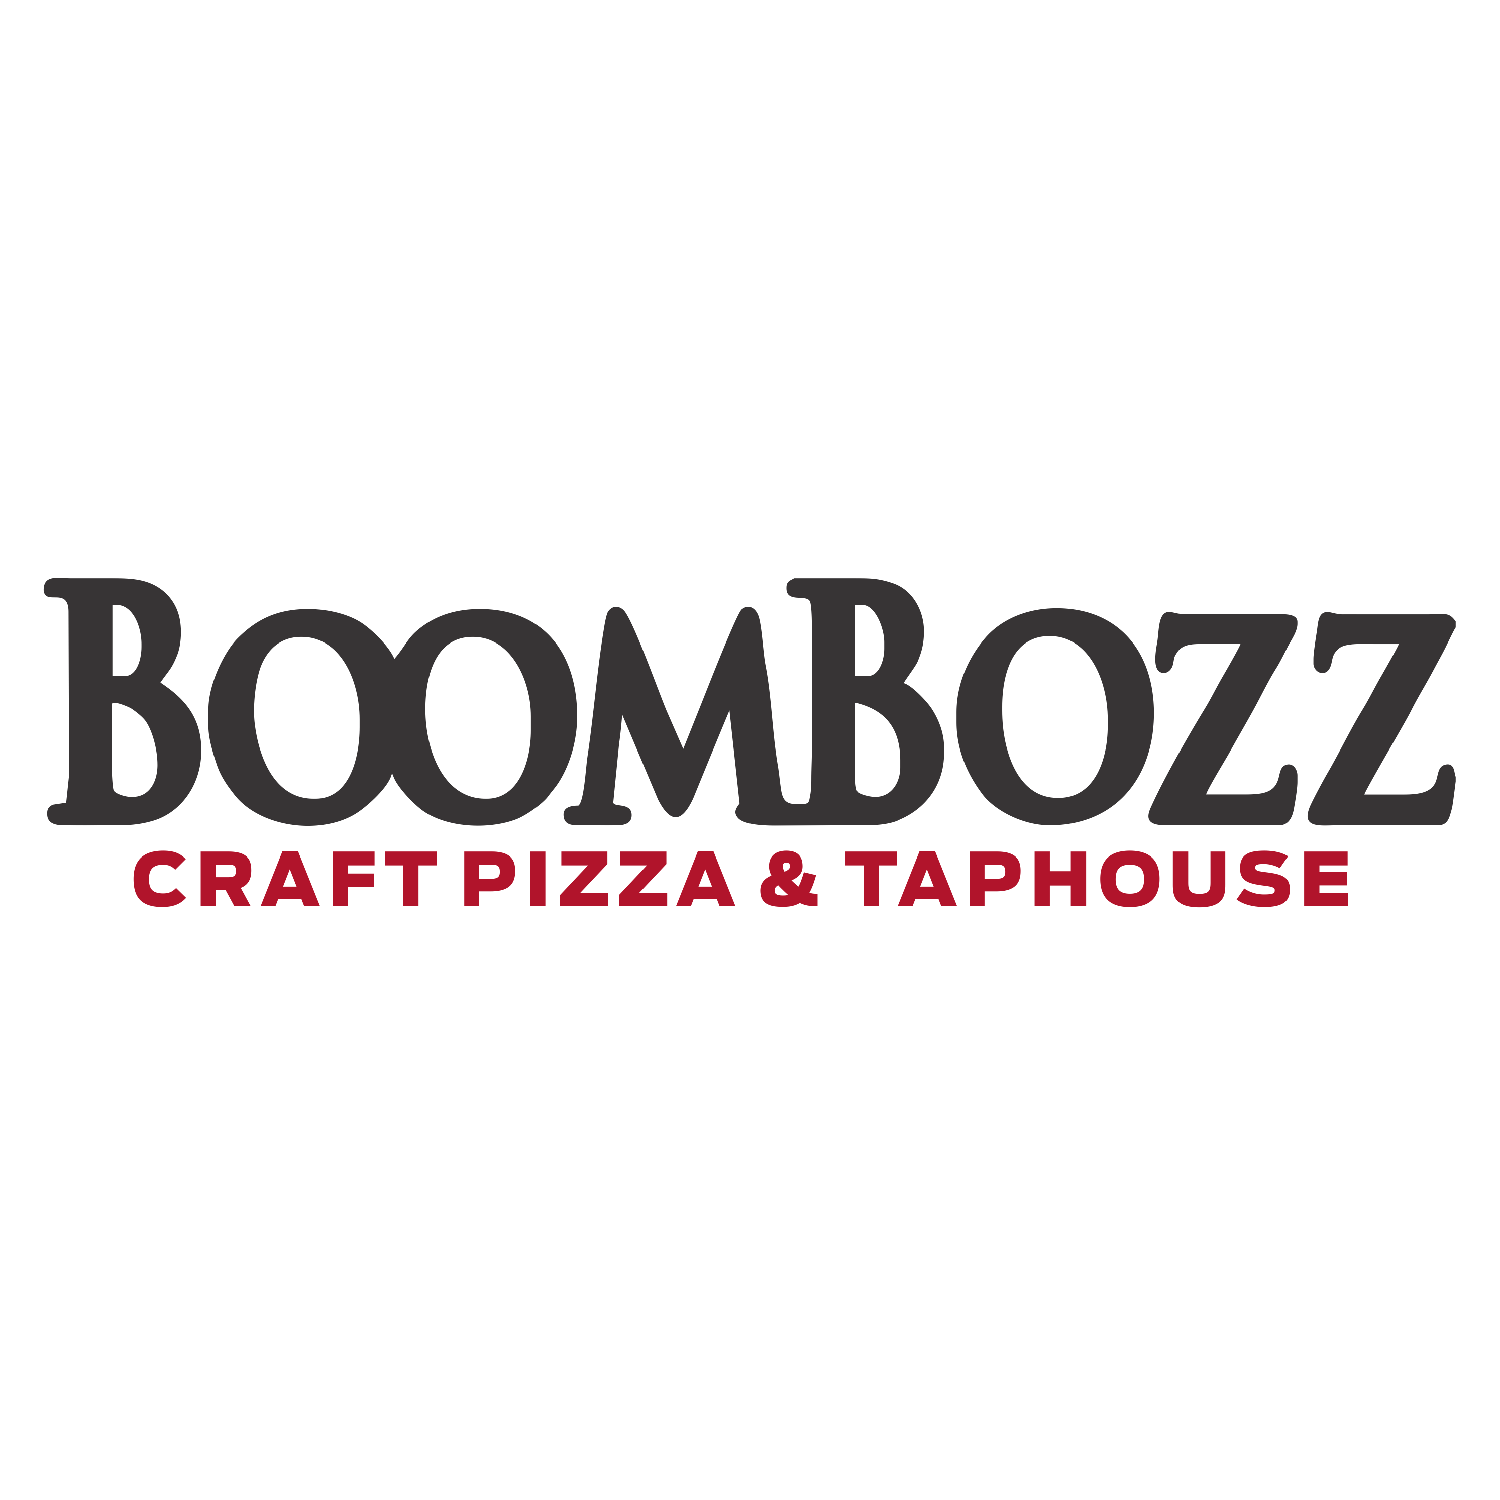 BoomBozz Craft Pizza